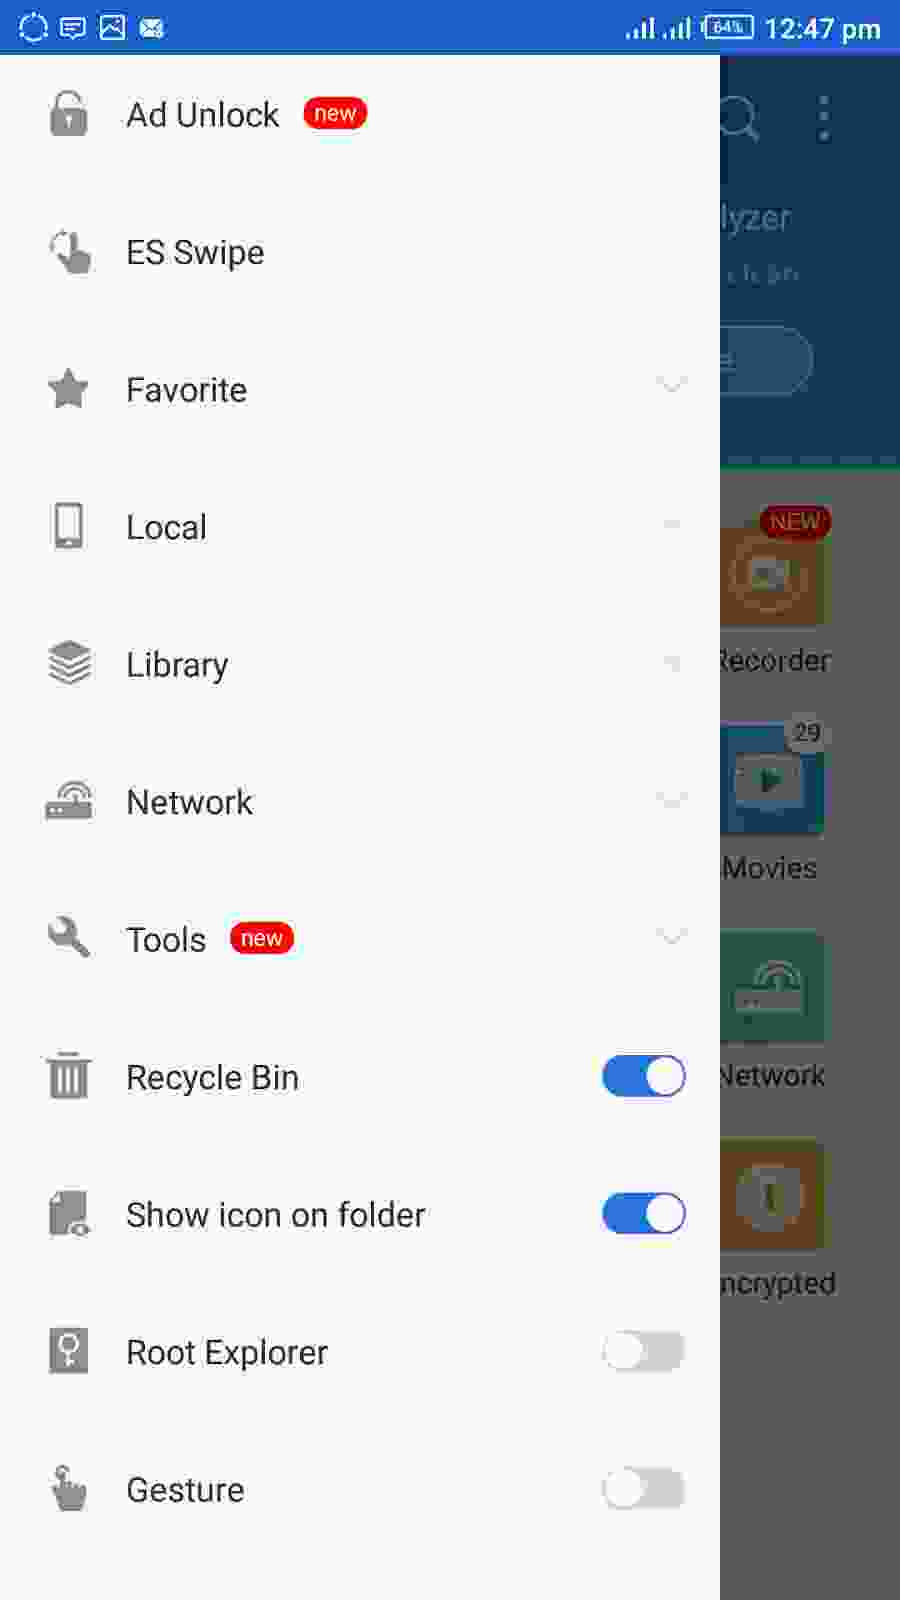 Hiding Files And Apps Using ES File Explorer Recycle Bin - Step 2